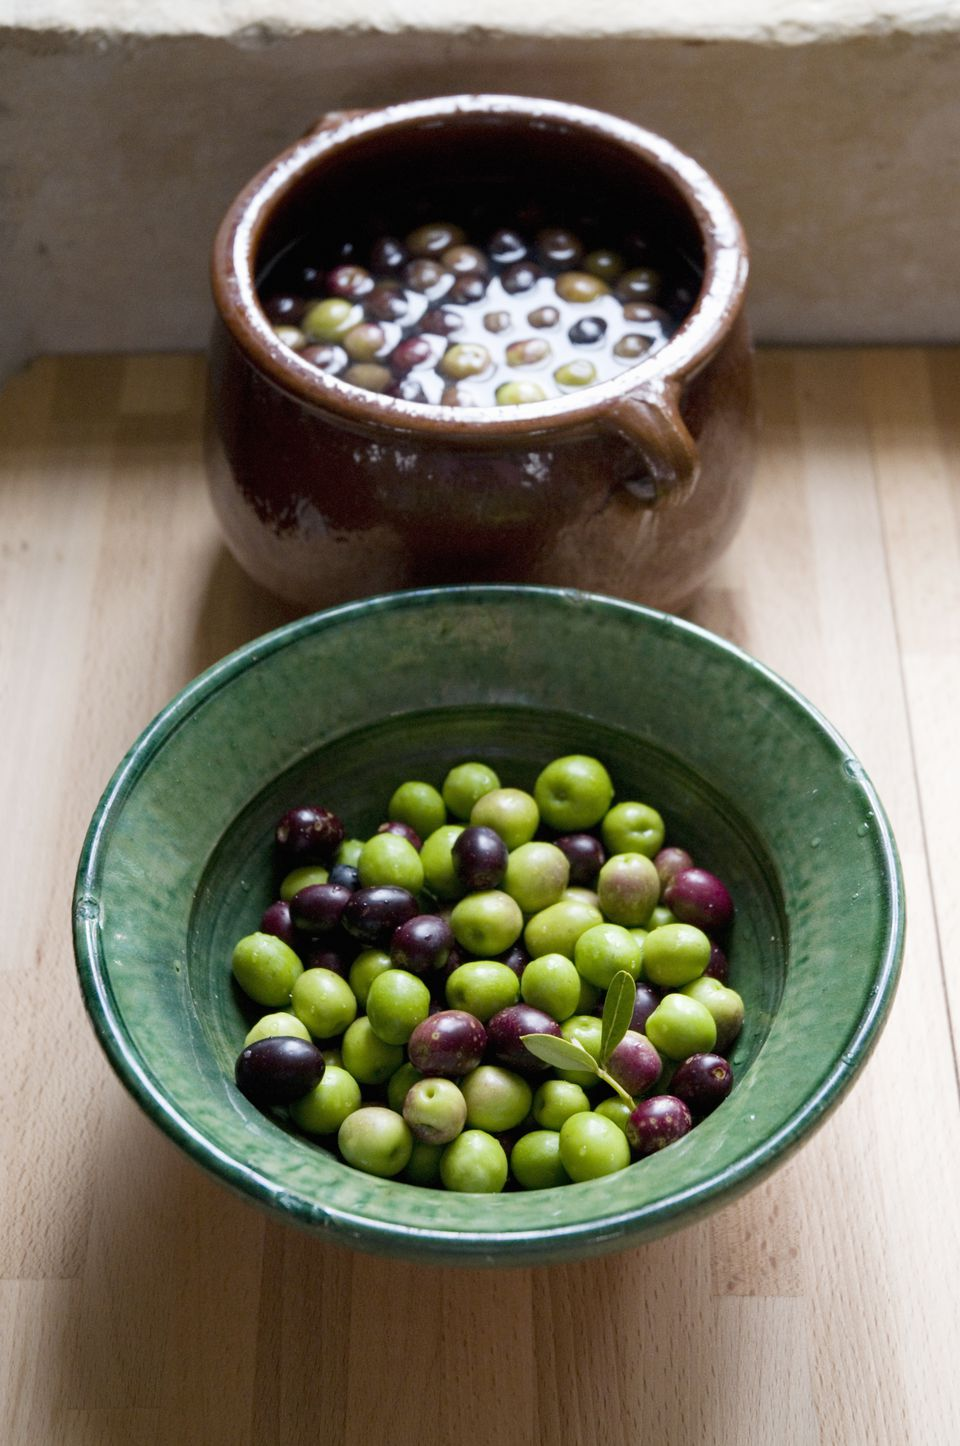 A bowl of raw olives(foreground) and a bowl of olives being cured in brine (background)